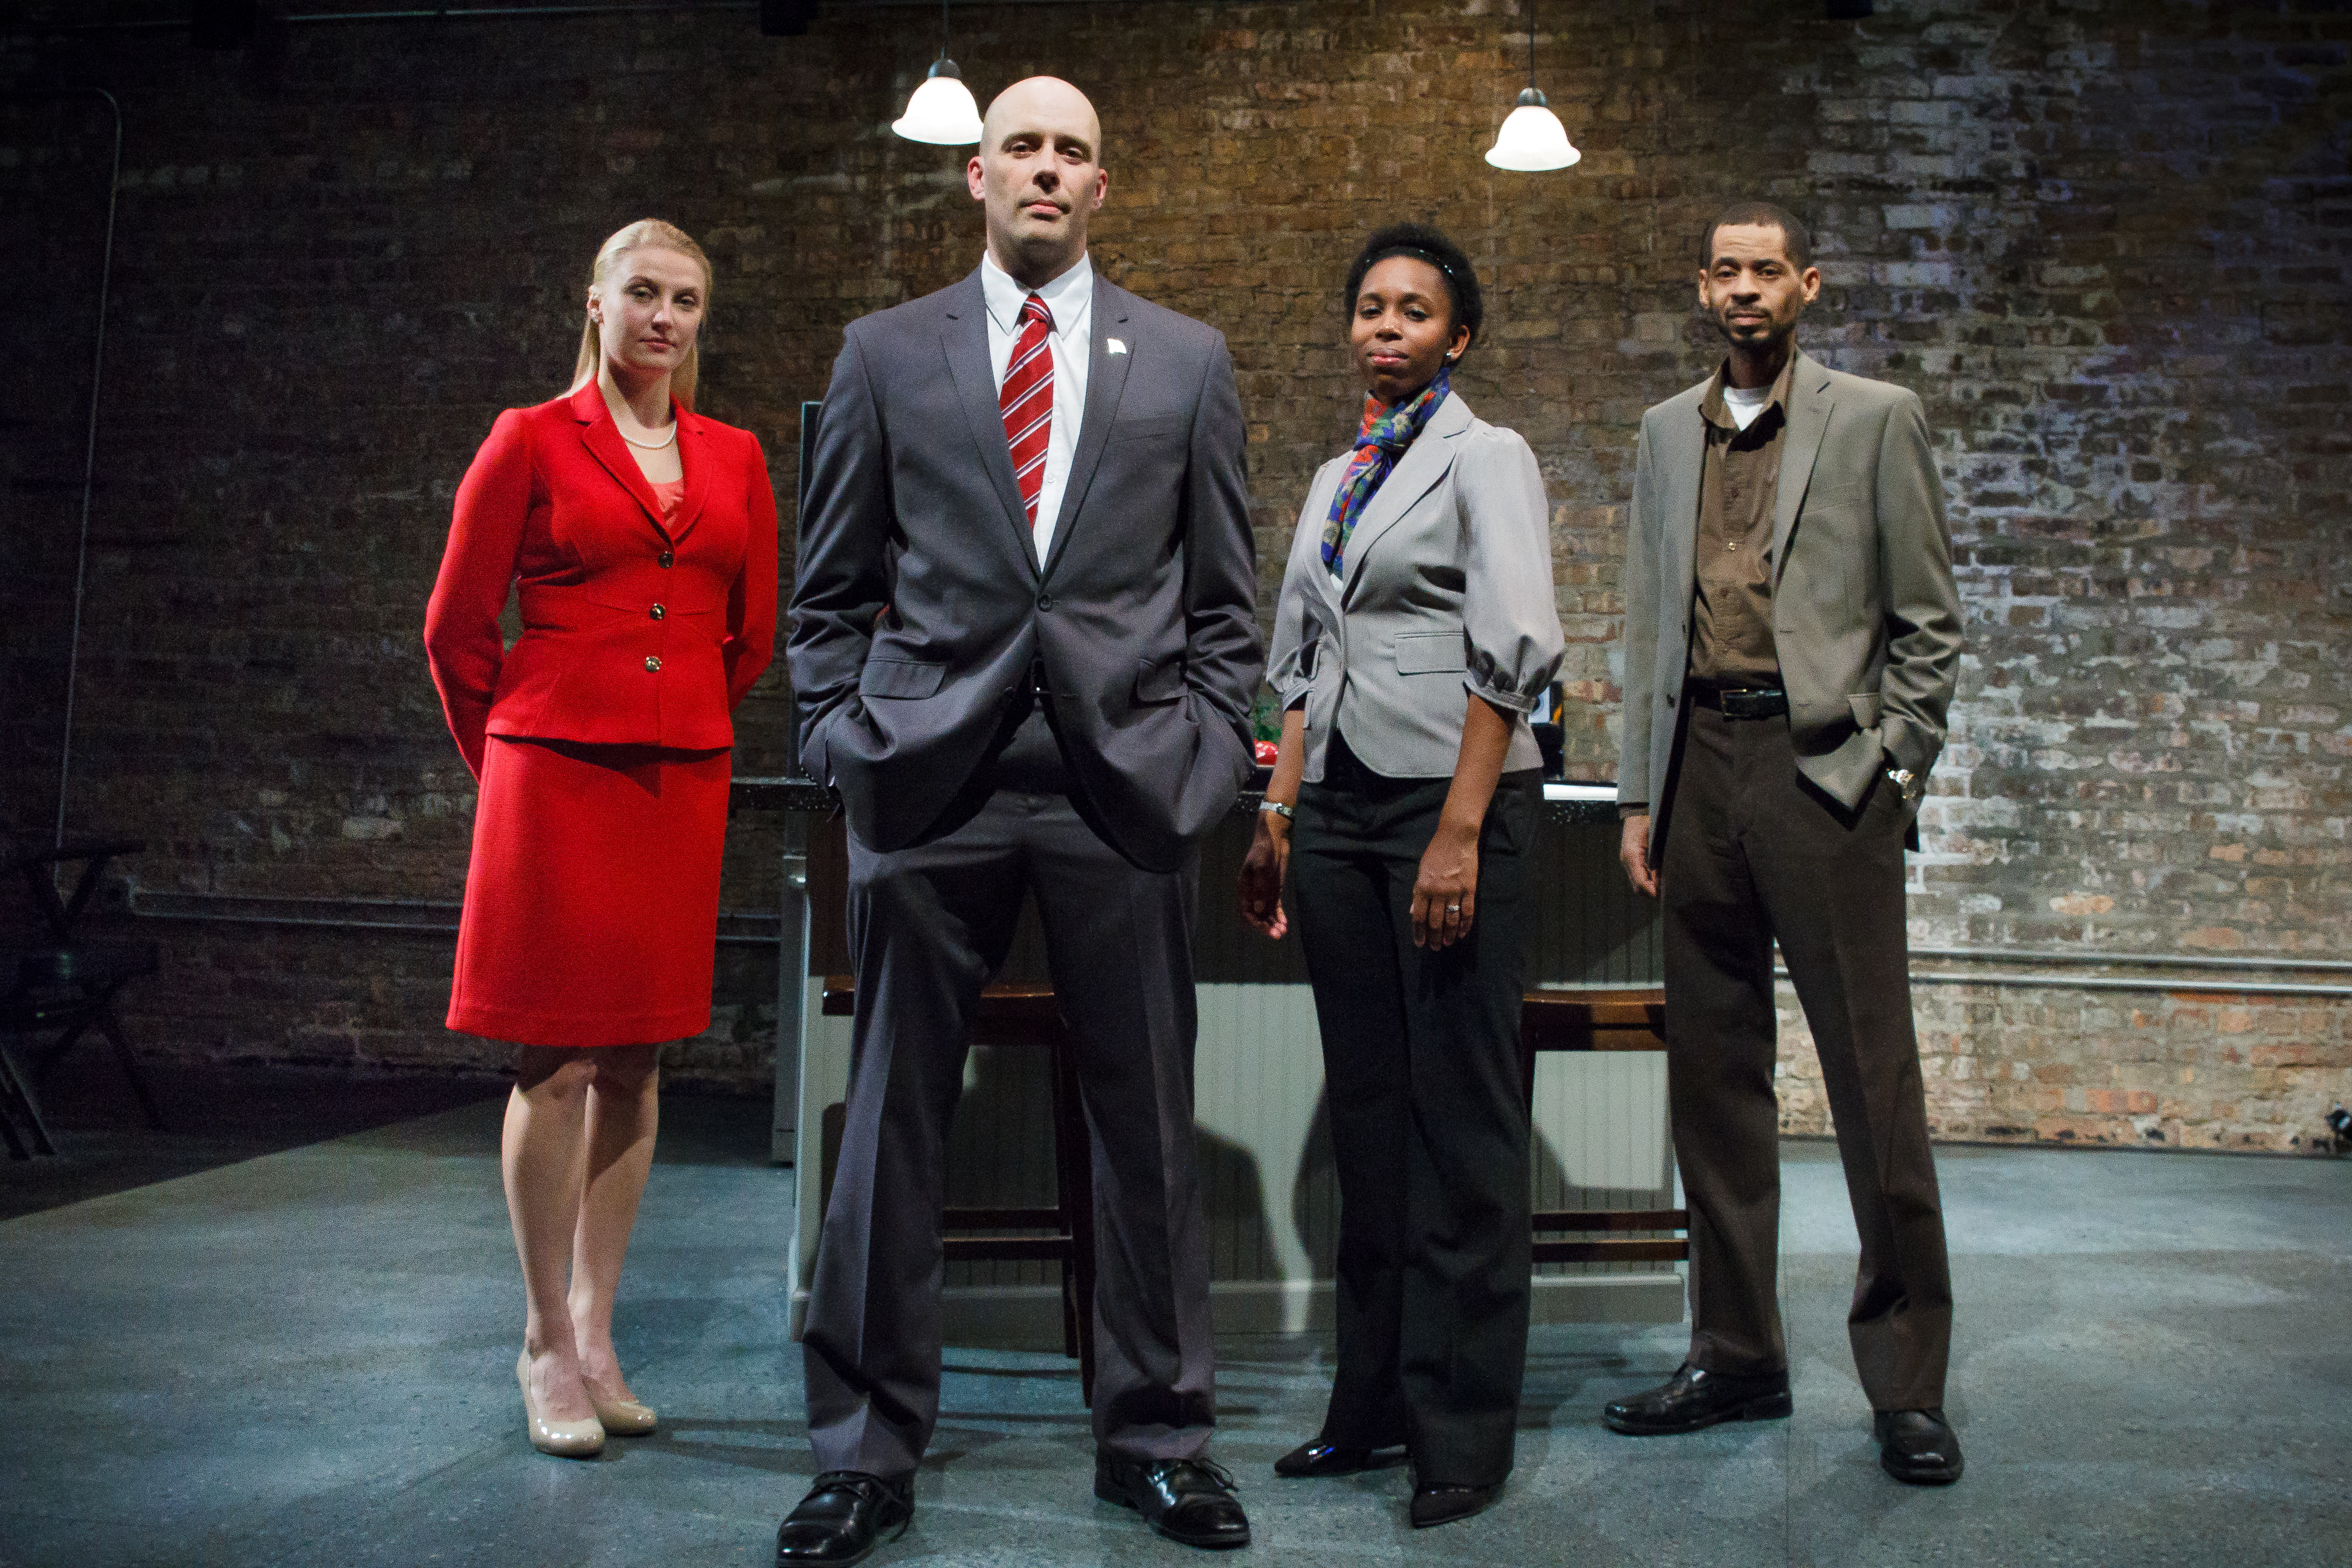 Melanie Derleth as Leslie, Vance Smith as Patrick, Kanome Jones as Gaby, and David Lawrence Hamilton as Jamal in The Firestorm by Meridith Friedman. Photo by Ian McLaren